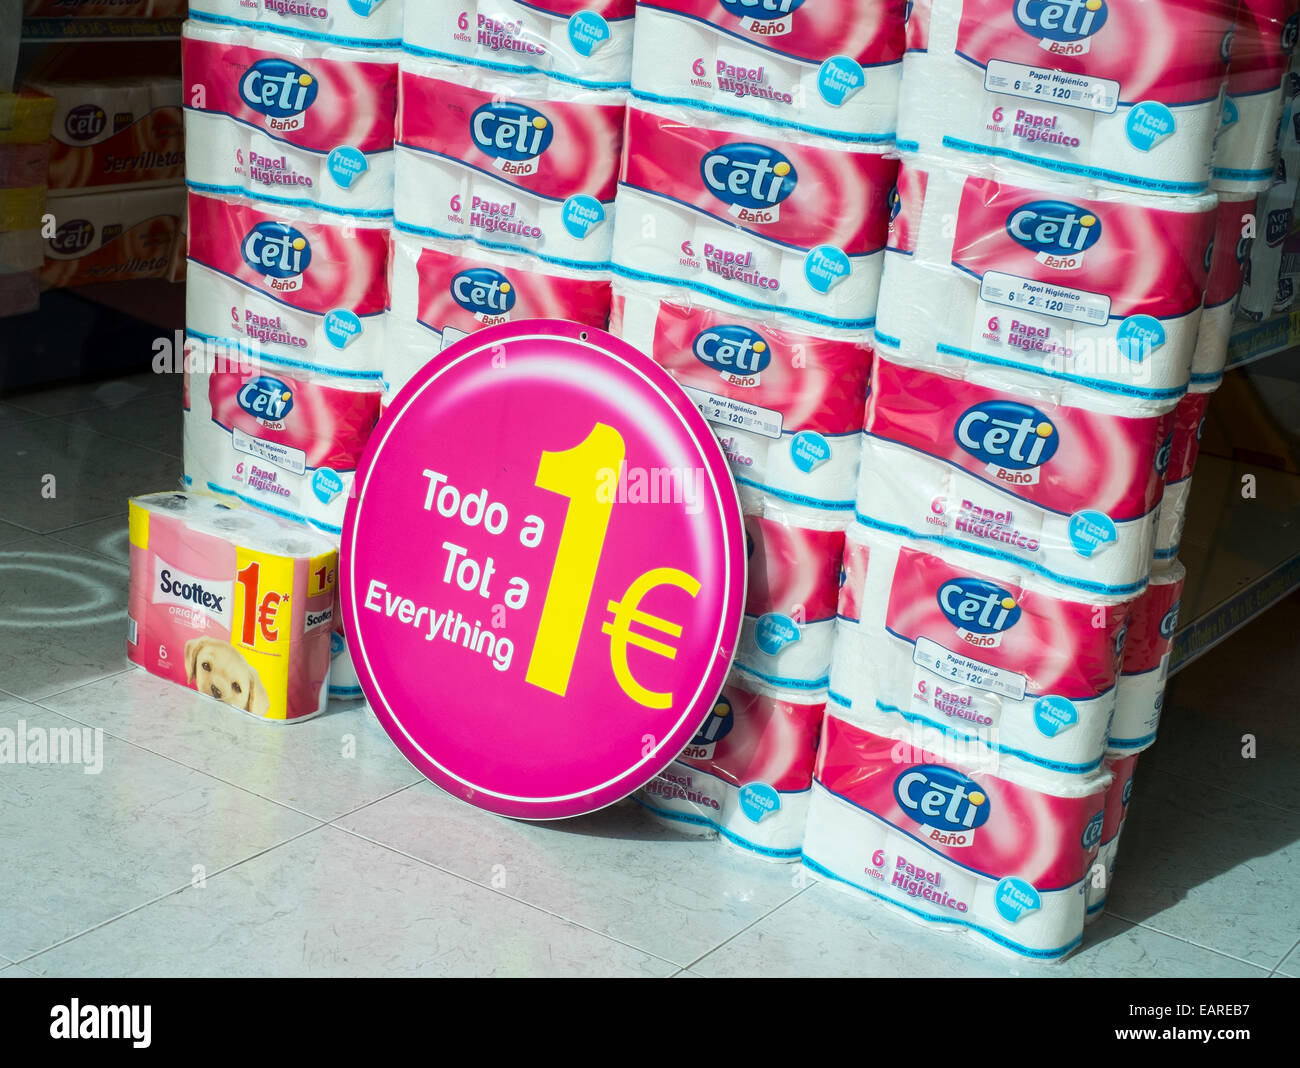 Toilet Rolls on sale in a One Euro shop, Javea, Valencia, Spain. - Stock Image